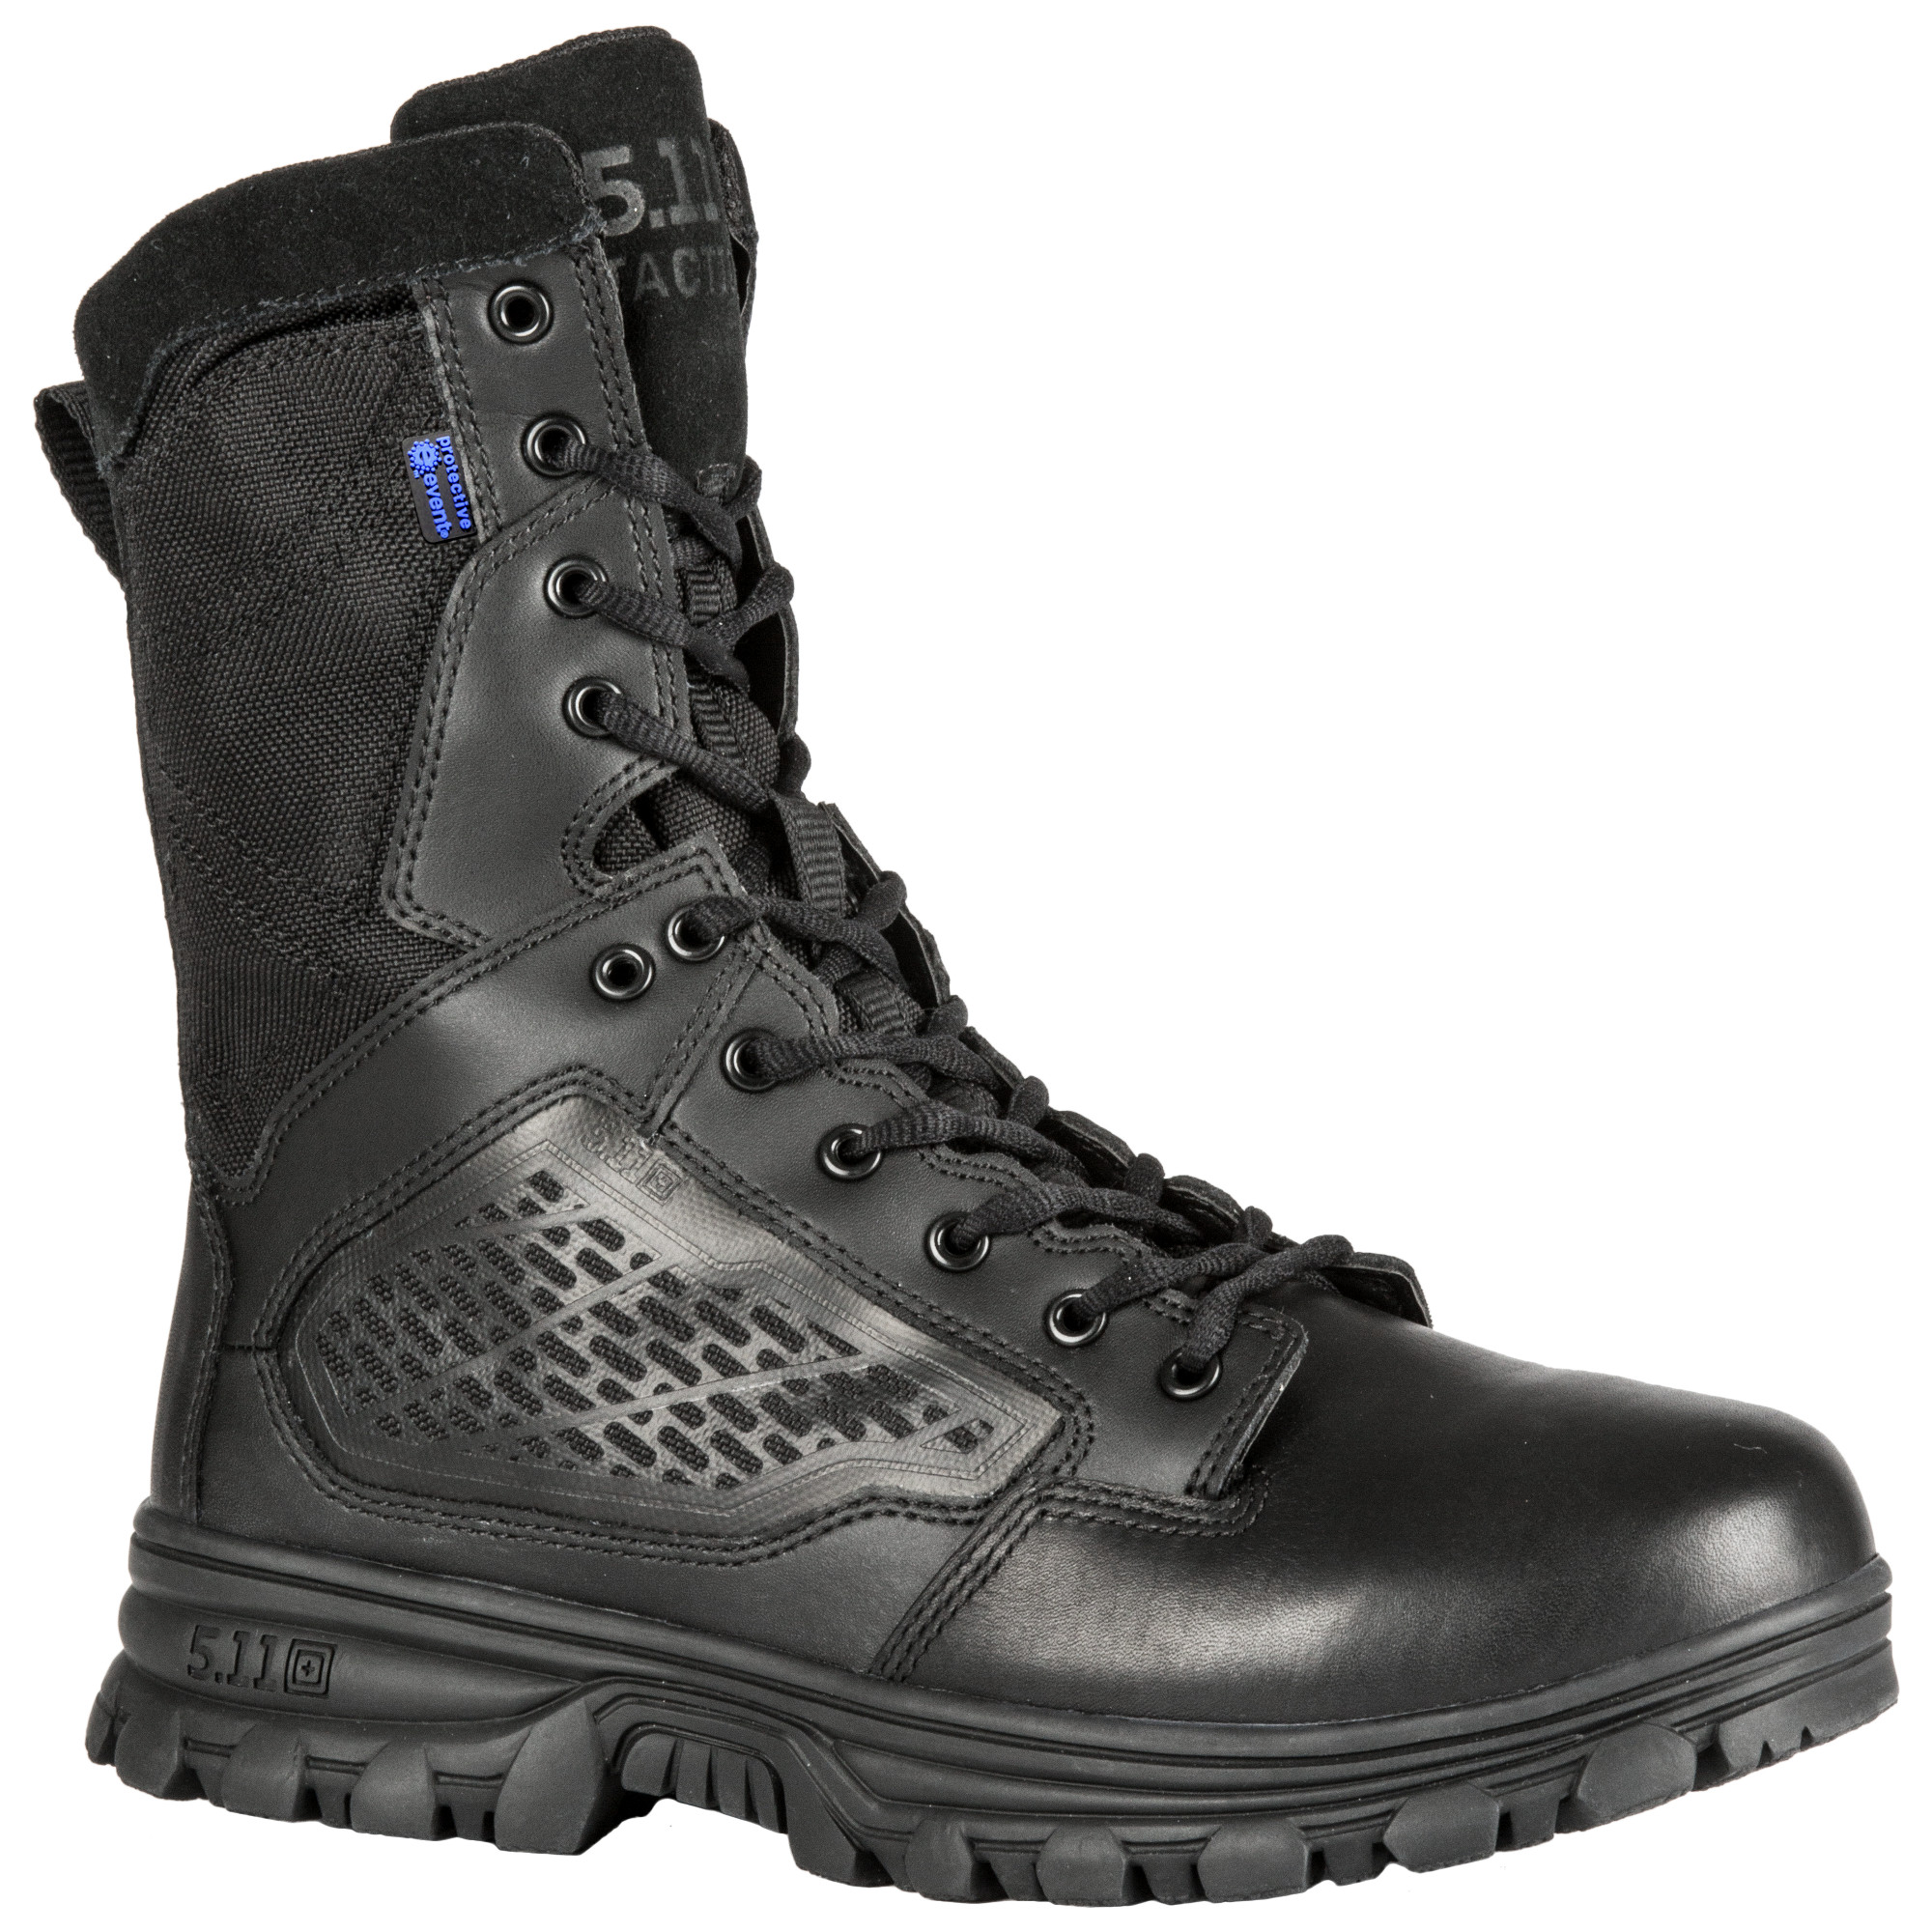 5.11 Tactical Men's EVO 8 Insulated Side Zip Boot (Black) thumbnail